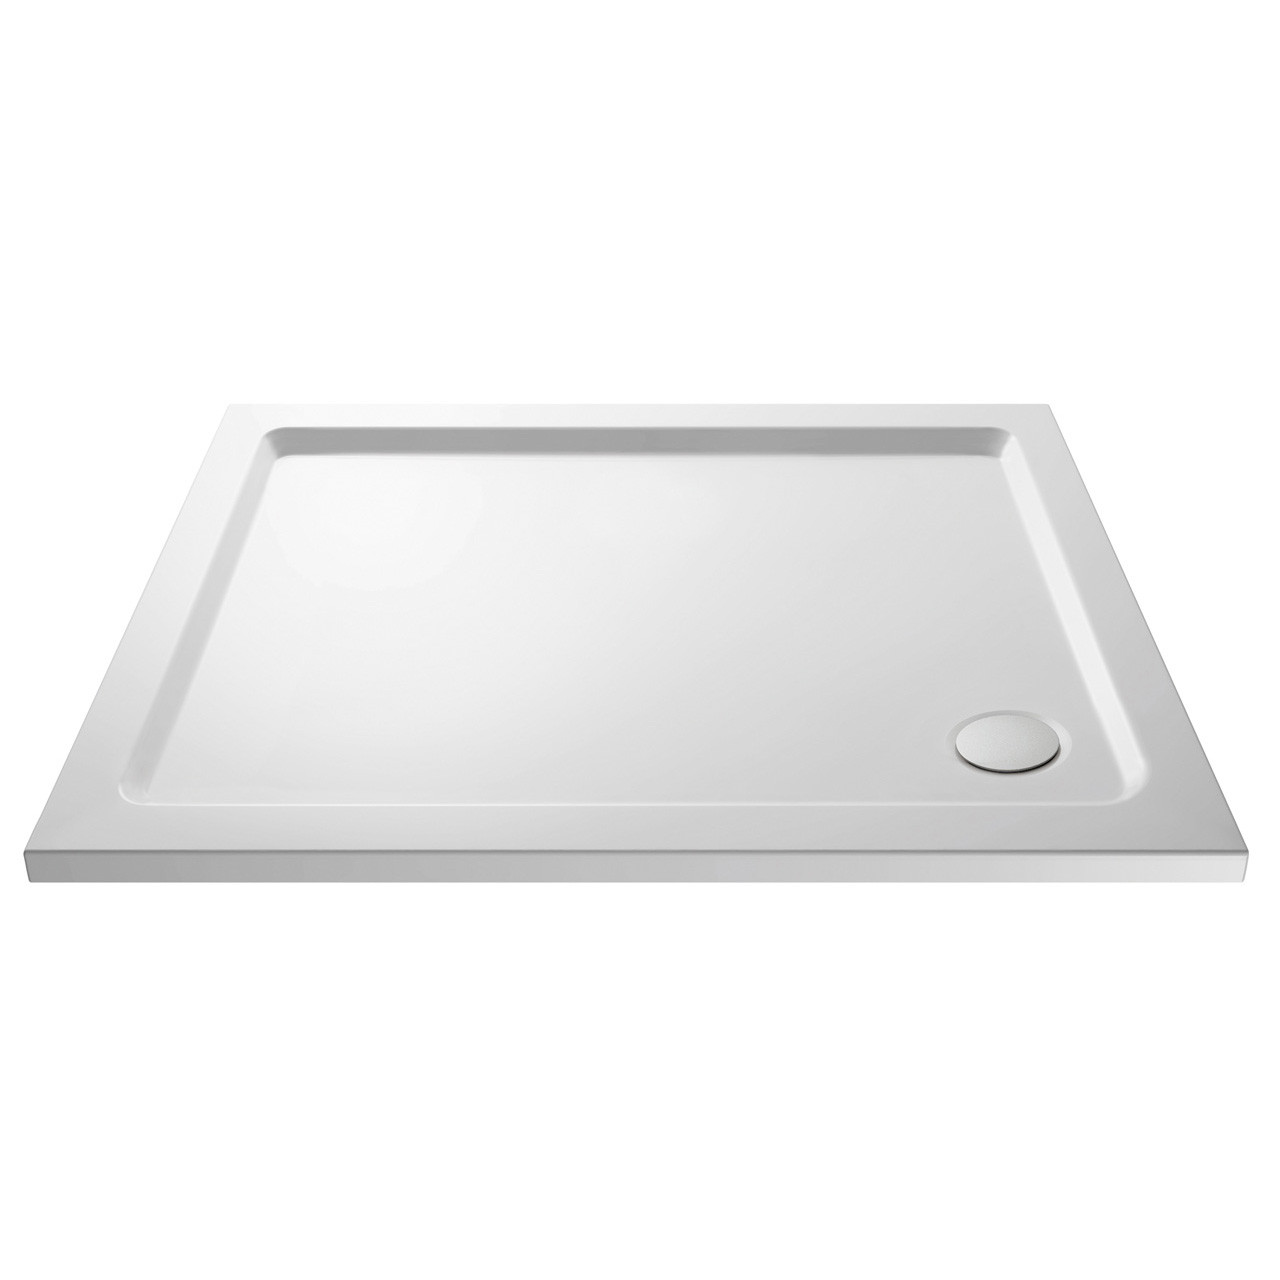 Premiere Pearlstone 1100mm x 760mm x 40mm Rectangular Shower Tray with Corner Waste - NTP017